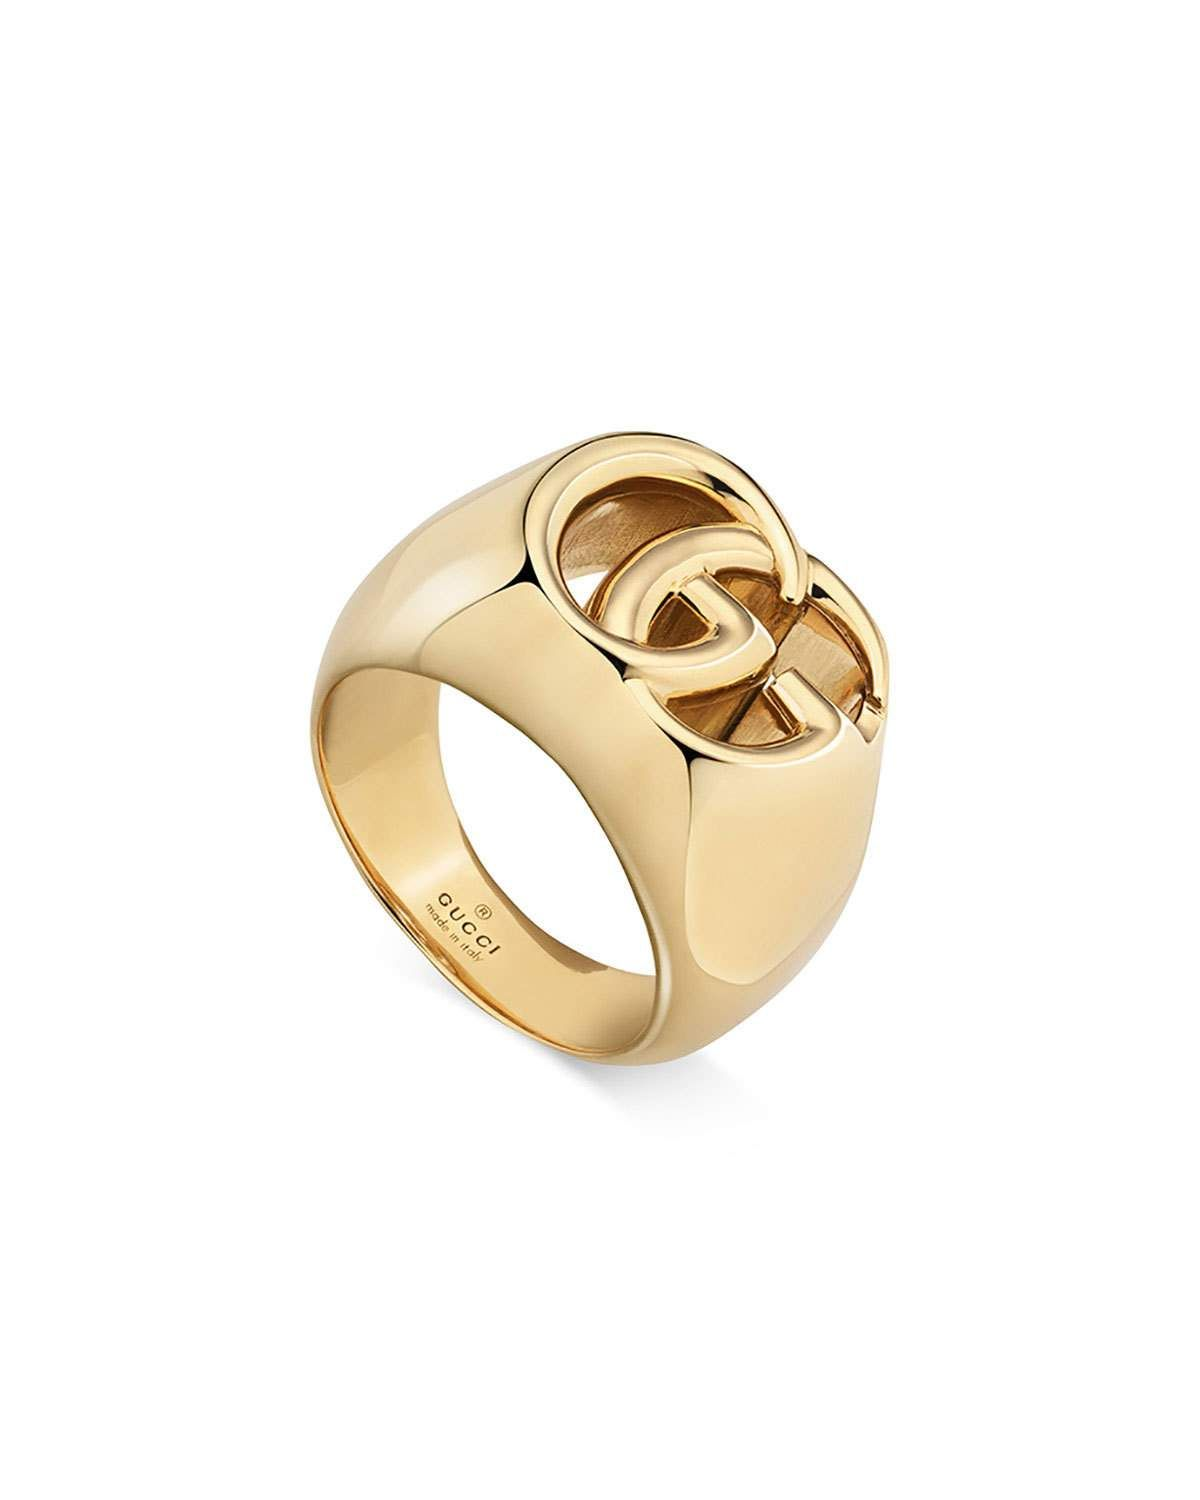 cbfa8efc3 Gucci Men's 18k Gold GG Running Ring, Size 10.5 in 2019 | Products ...